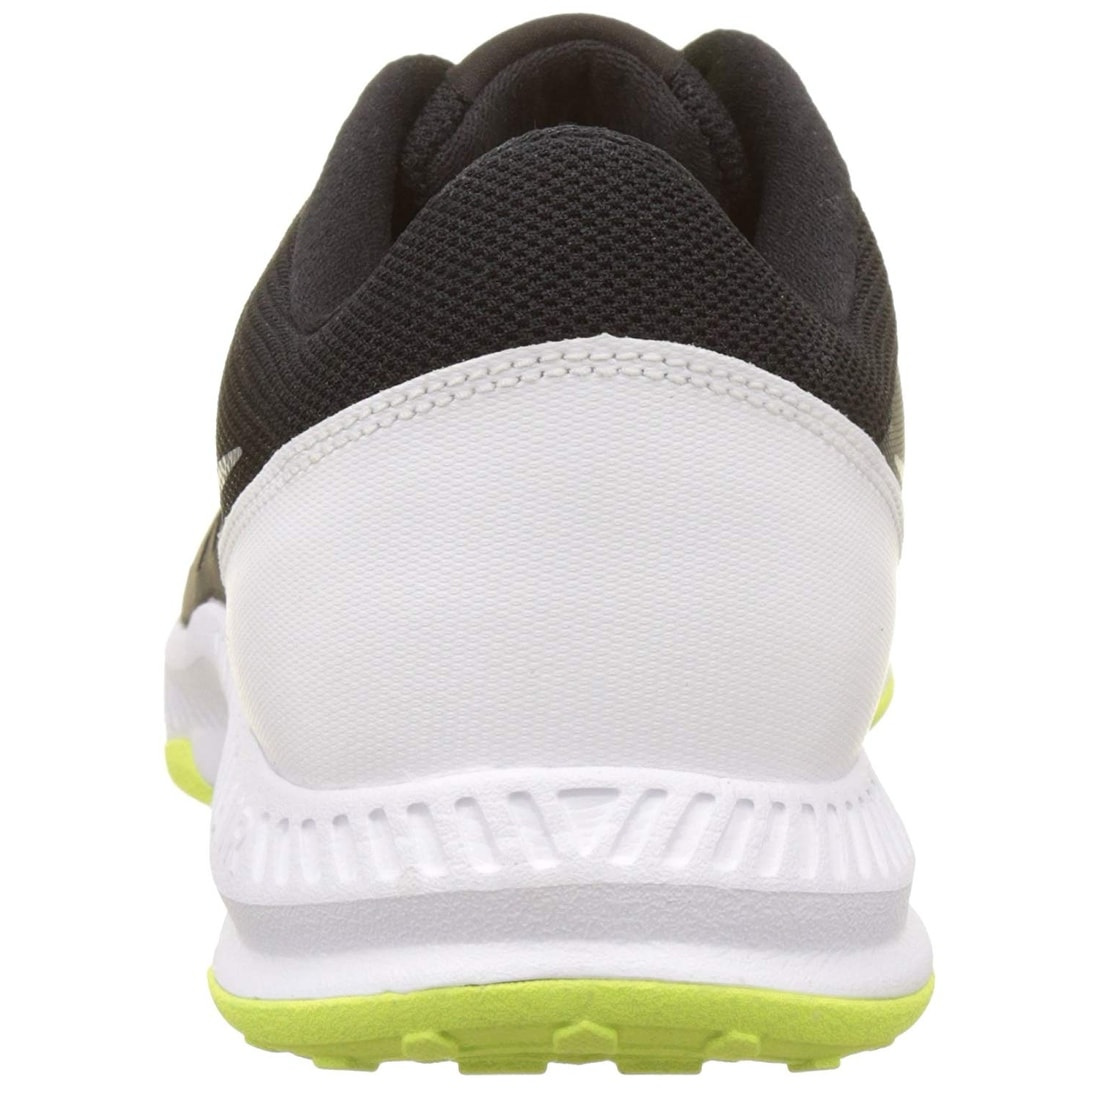 358931bb6bf Shop NIKE Men s Air Epic Speed TR II Cross Trainer Shoes - Free Shipping  Today - Overstock - 22726749